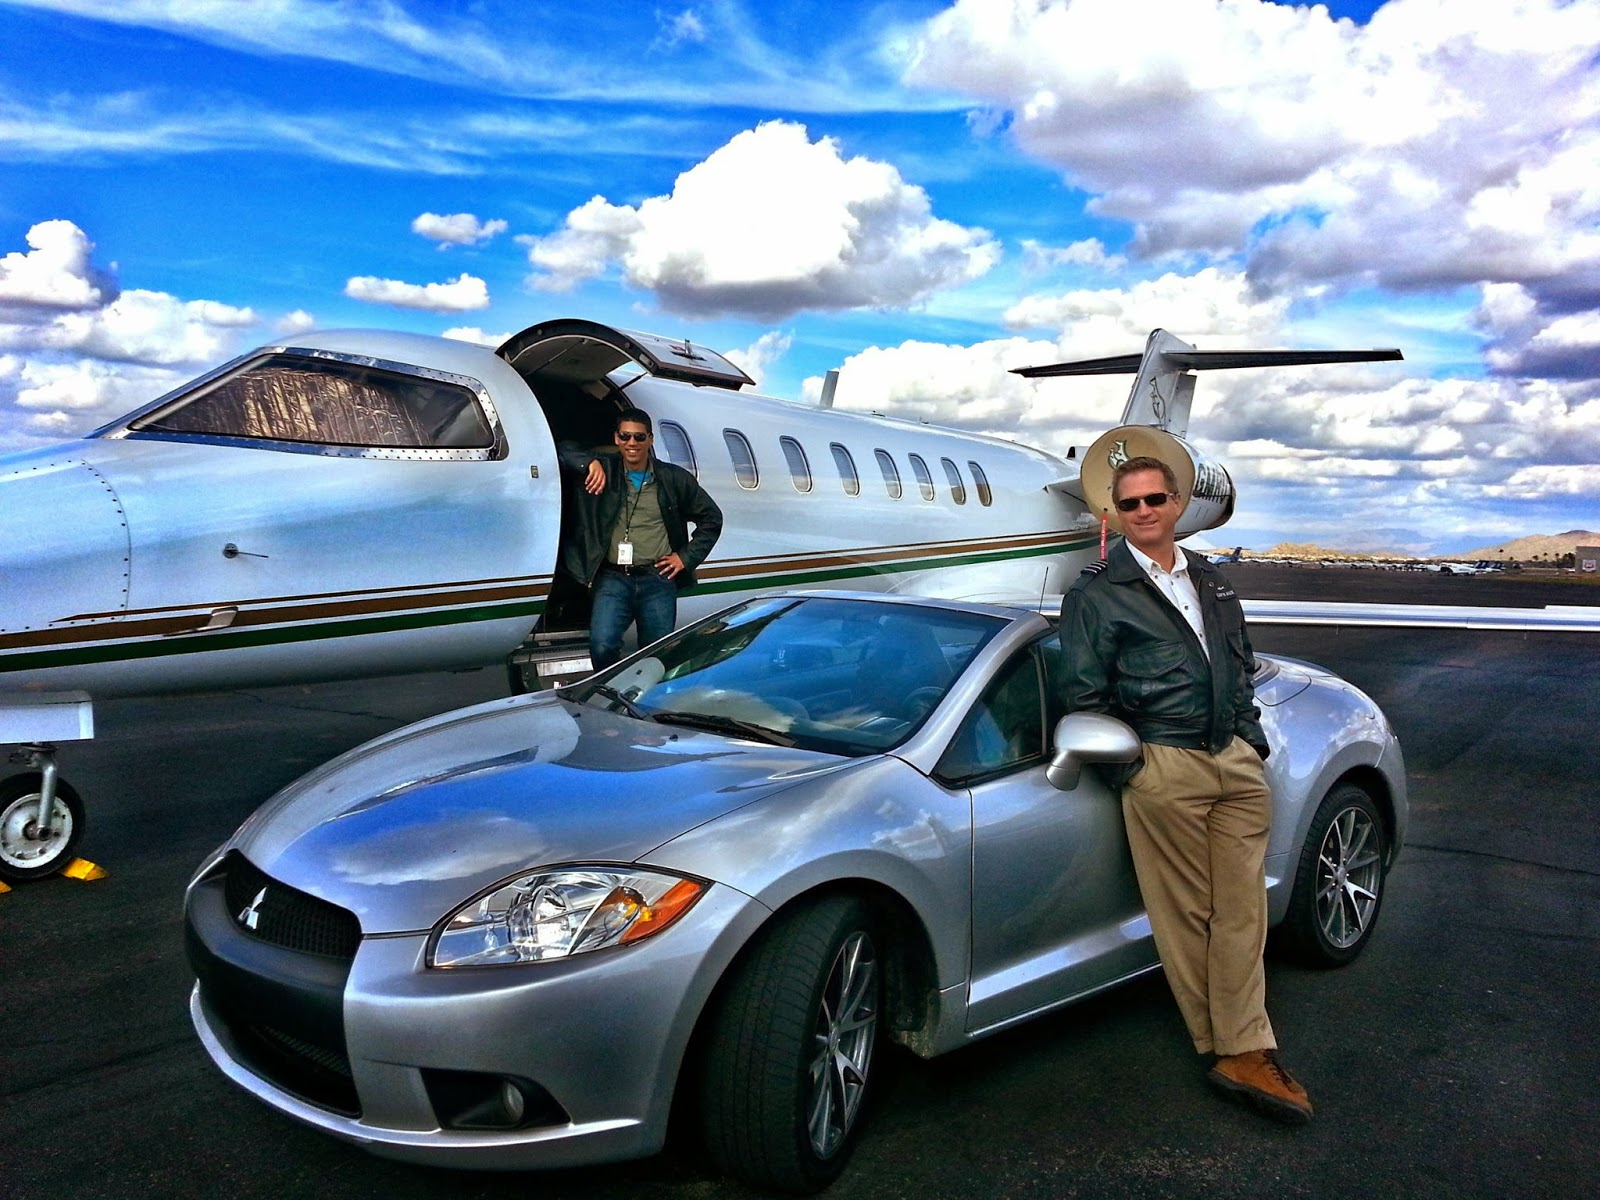 jd marcellin, cap'n aux, capn, captain,blog,vlog,avgeek,aviation,lear 45, esquire,GQ,jet set,